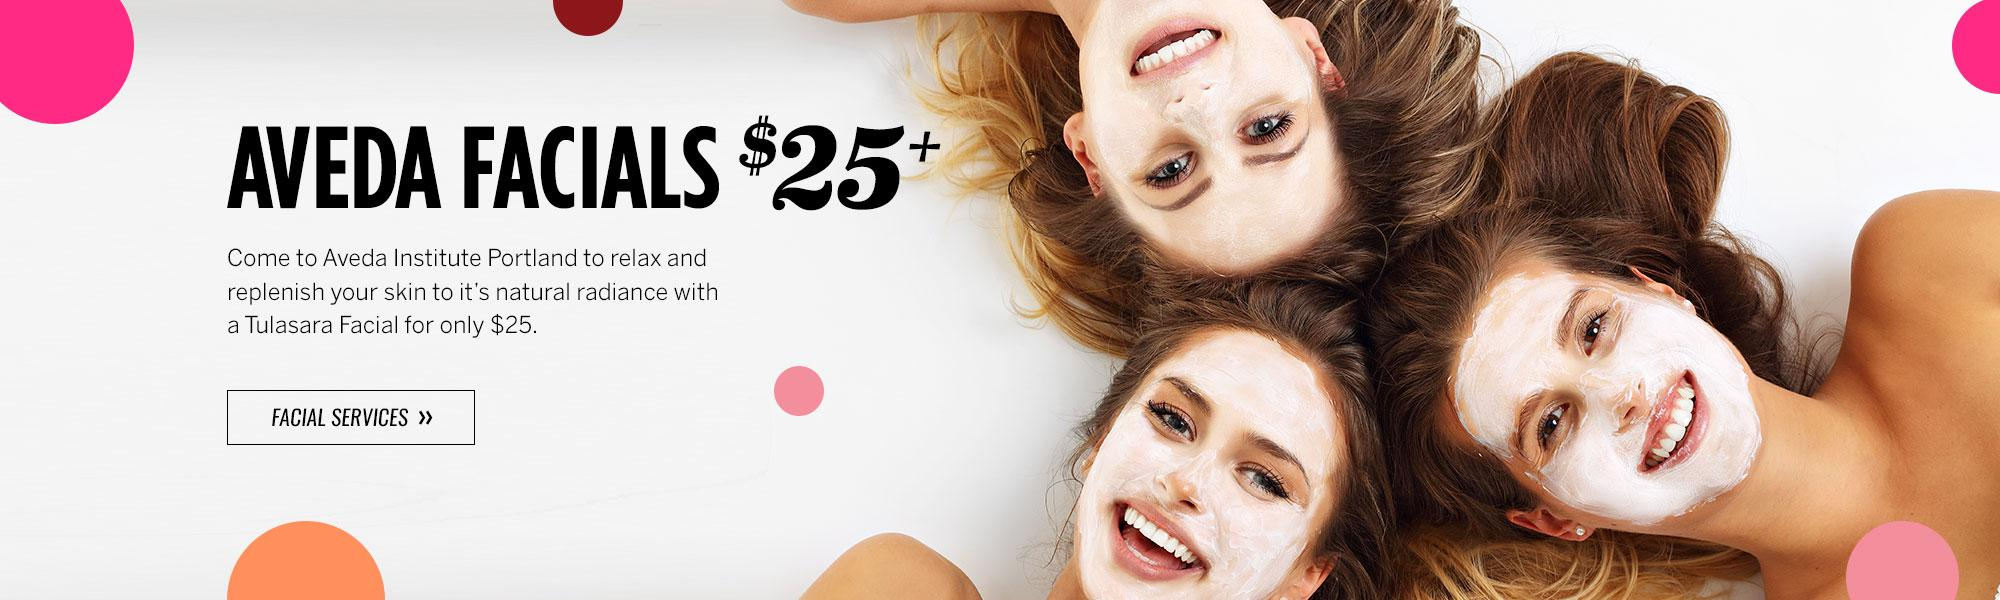 Facials, Spa, Tulasara, Beauty School, Spa Day, Budget